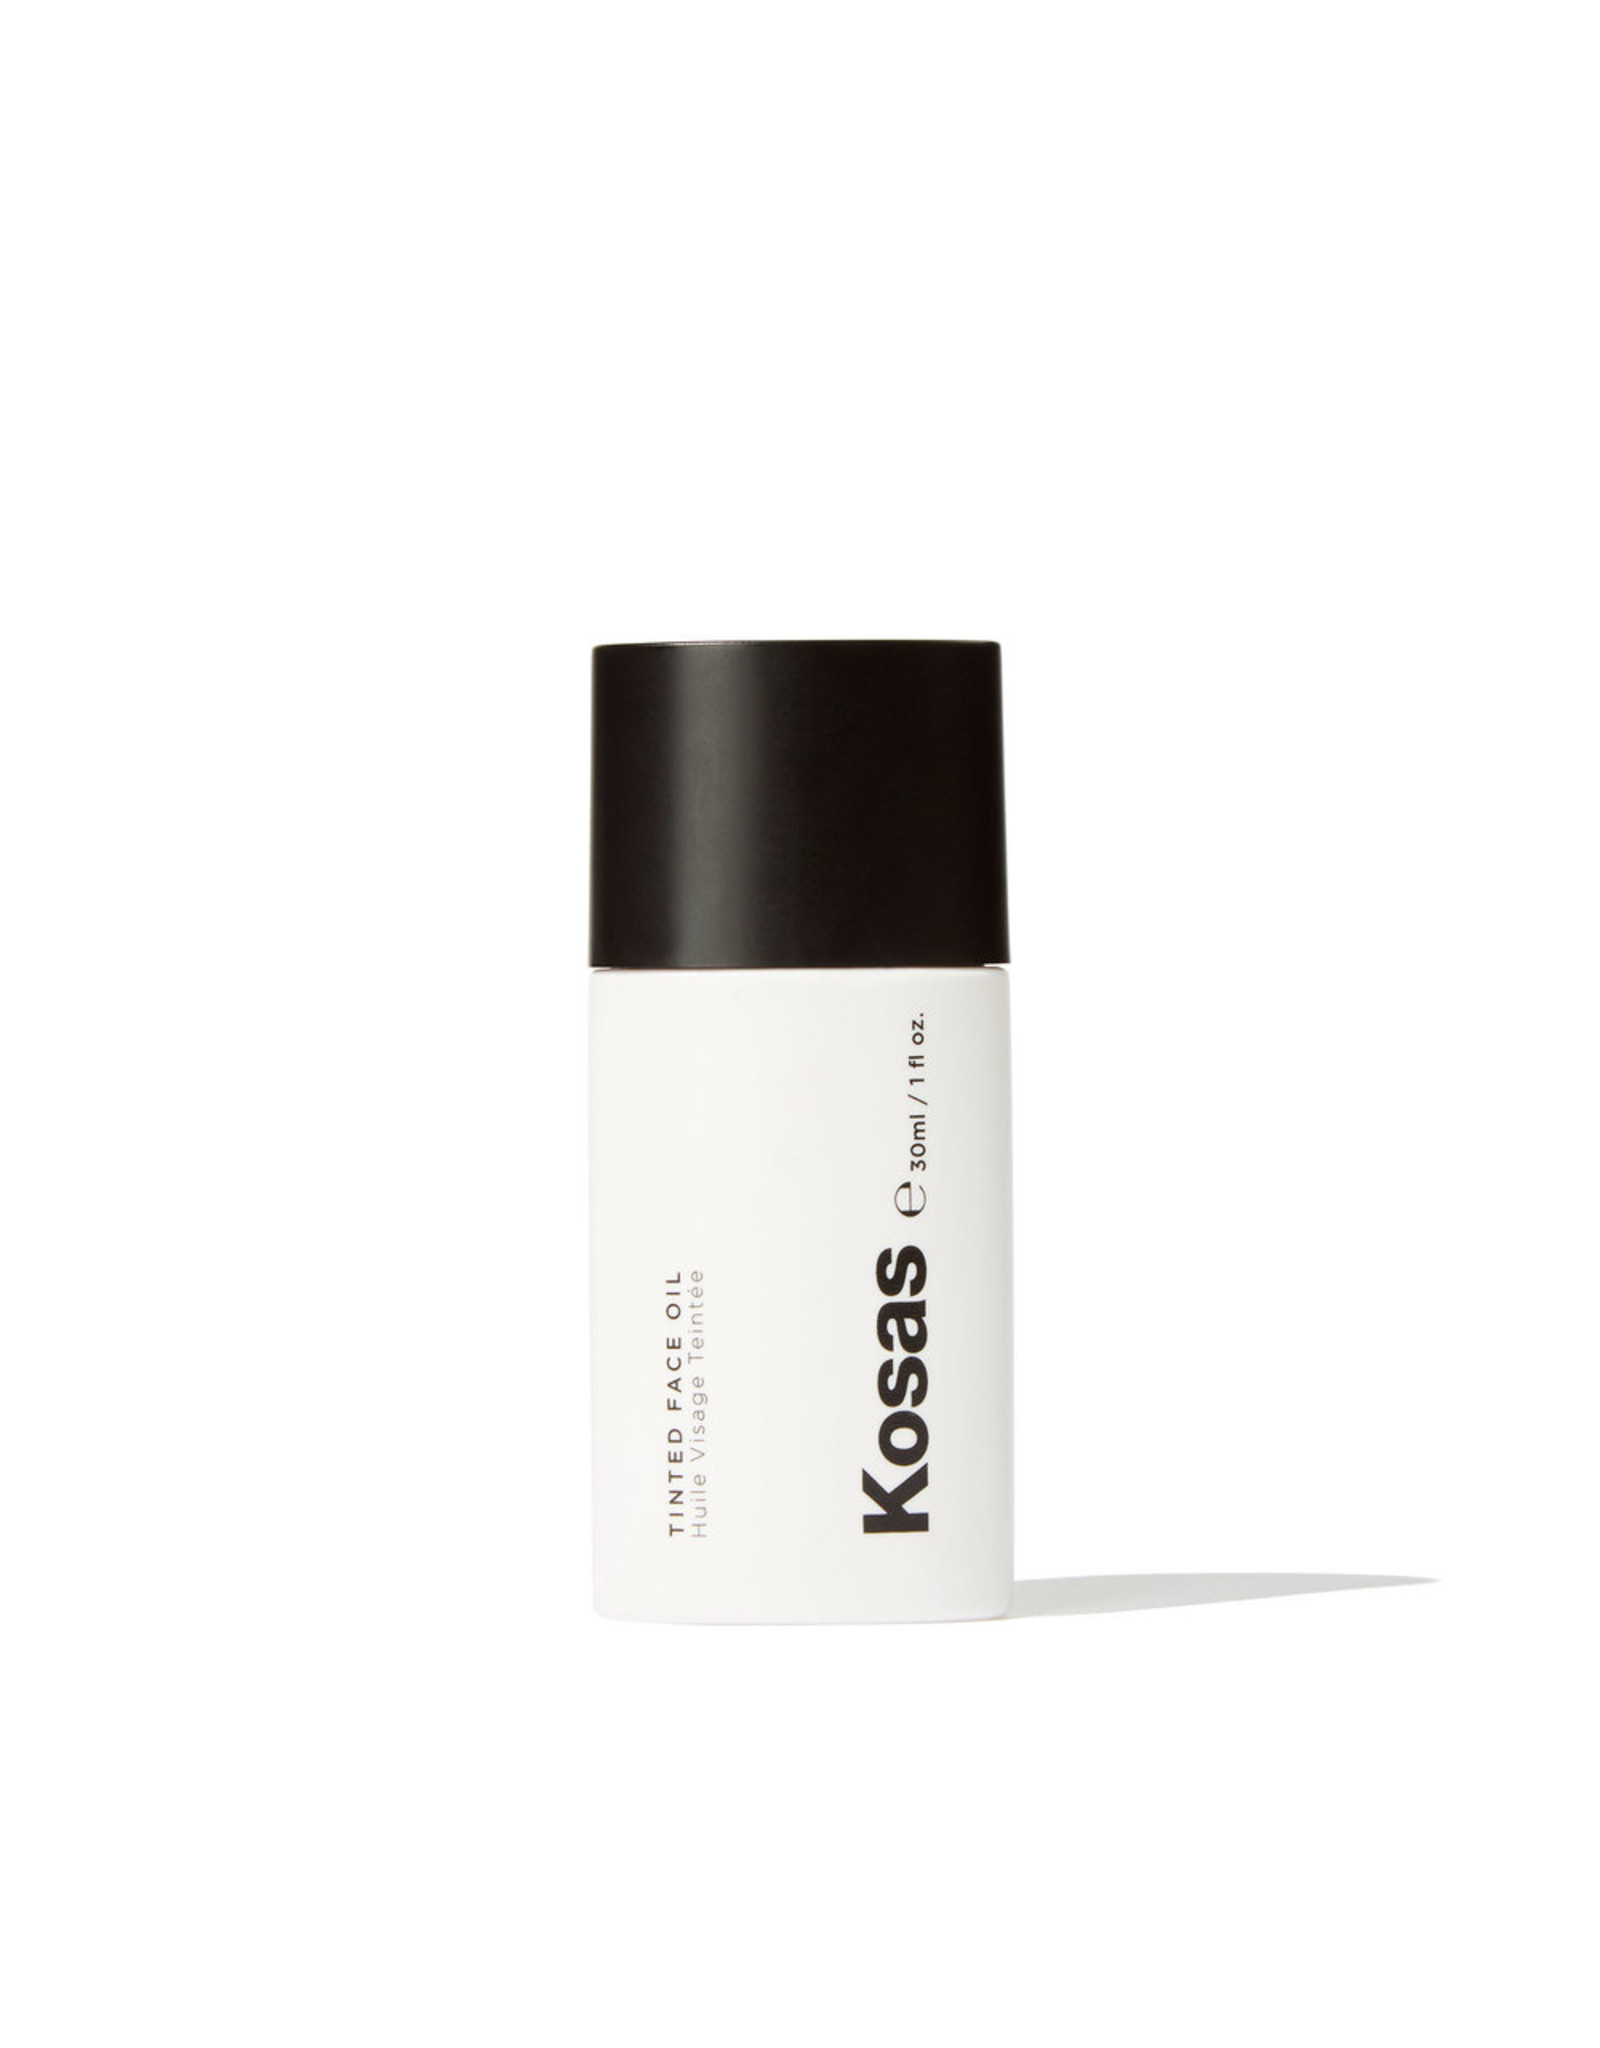 Kosas Kosas Tinted Face Oil (Color: 04)